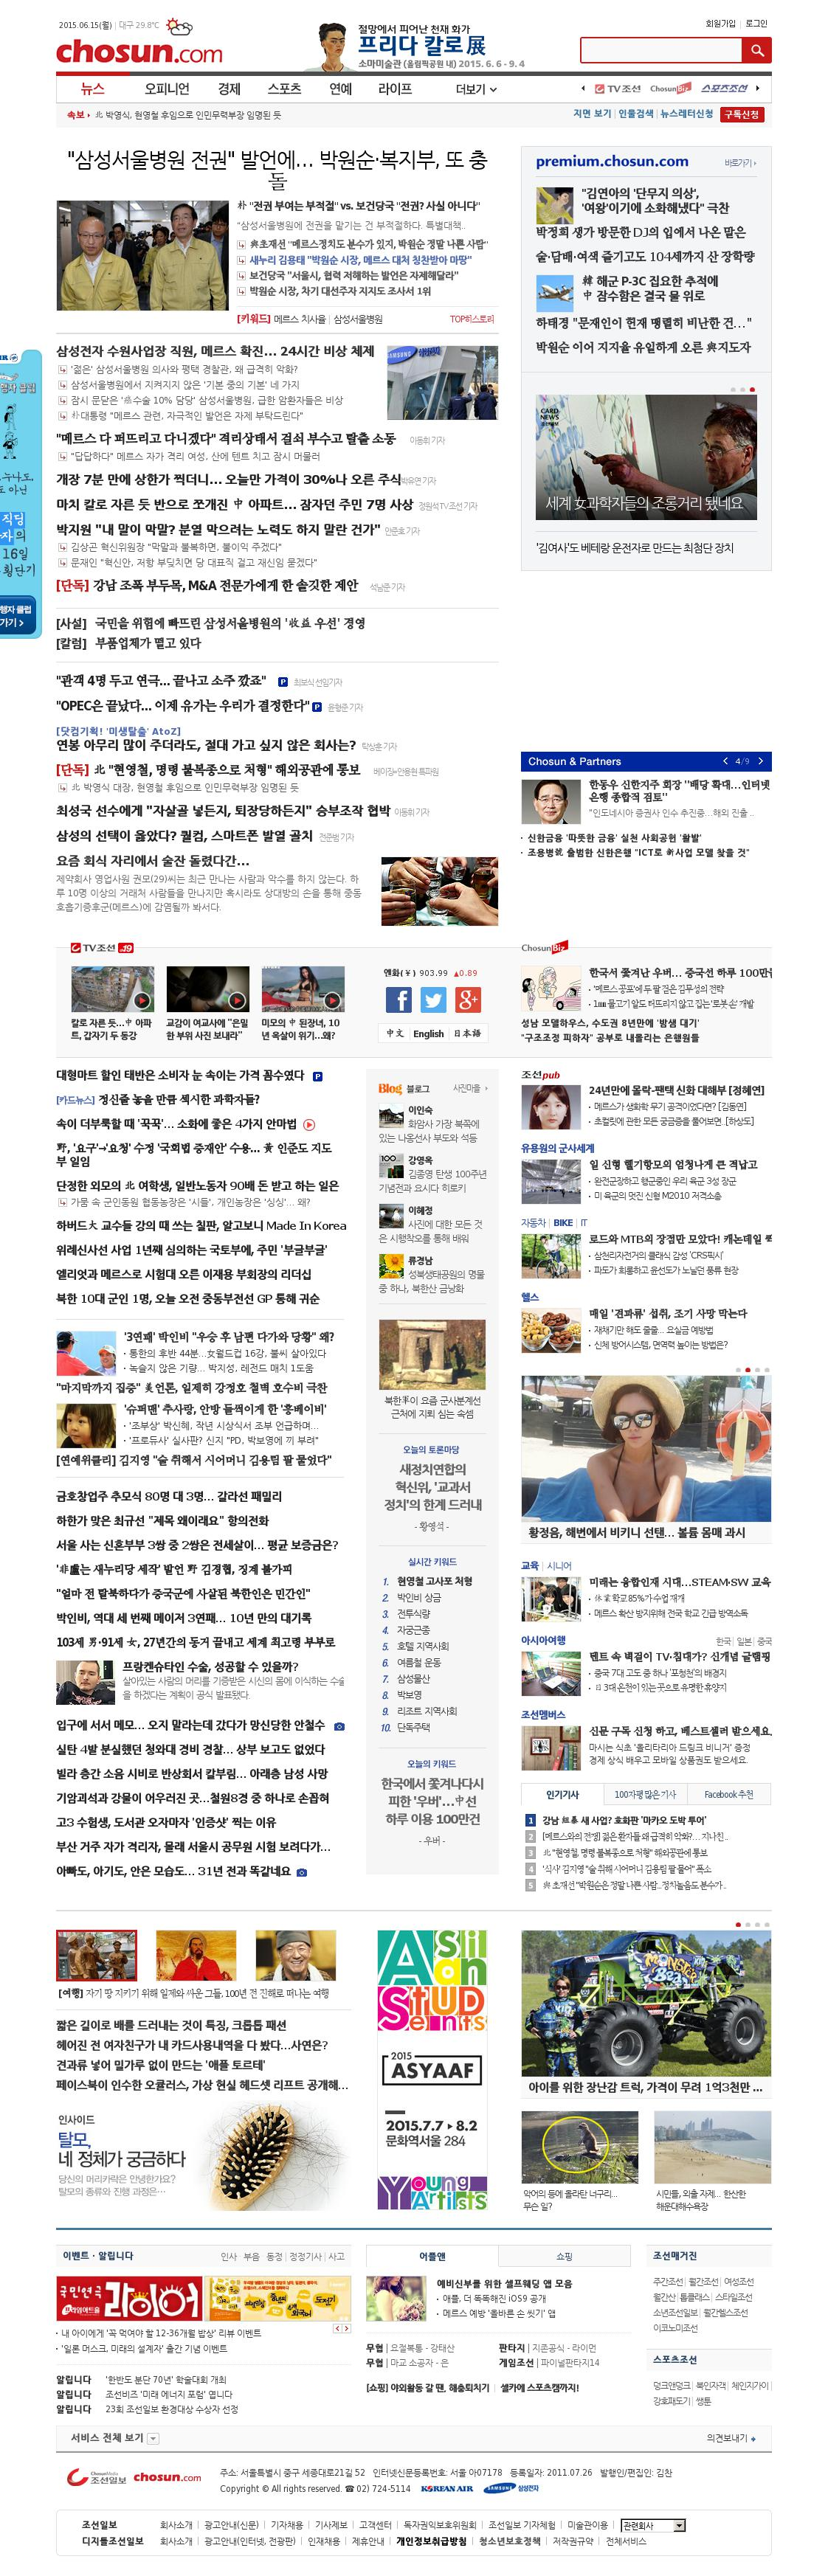 chosun.com at Monday June 15, 2015, 6:03 a.m. UTC